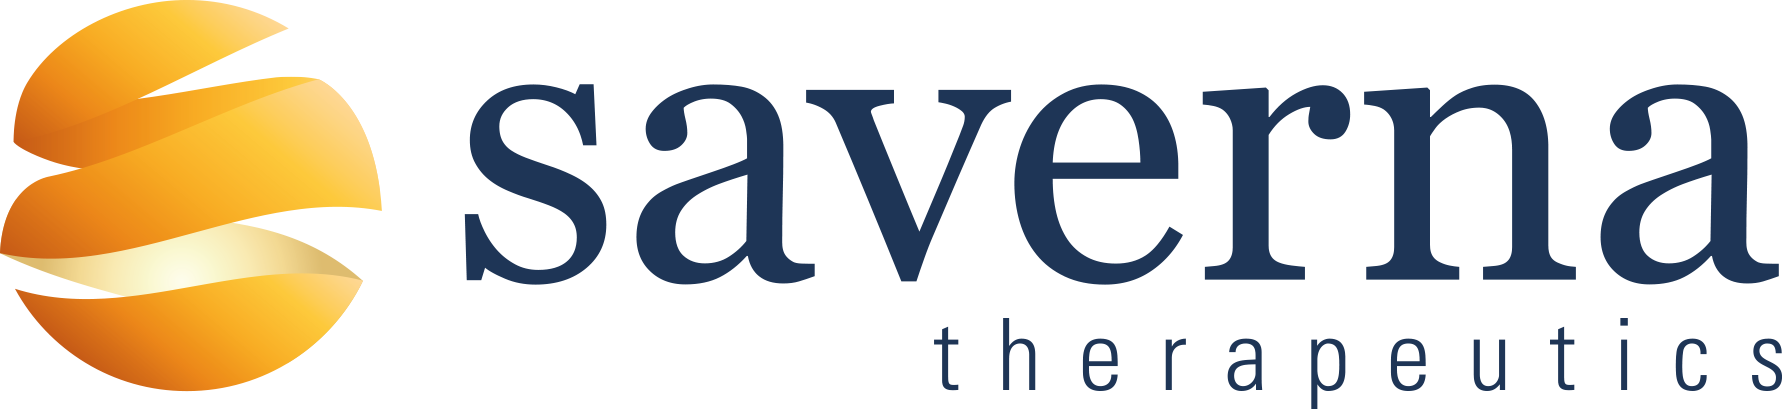 Saverna Therapeutics